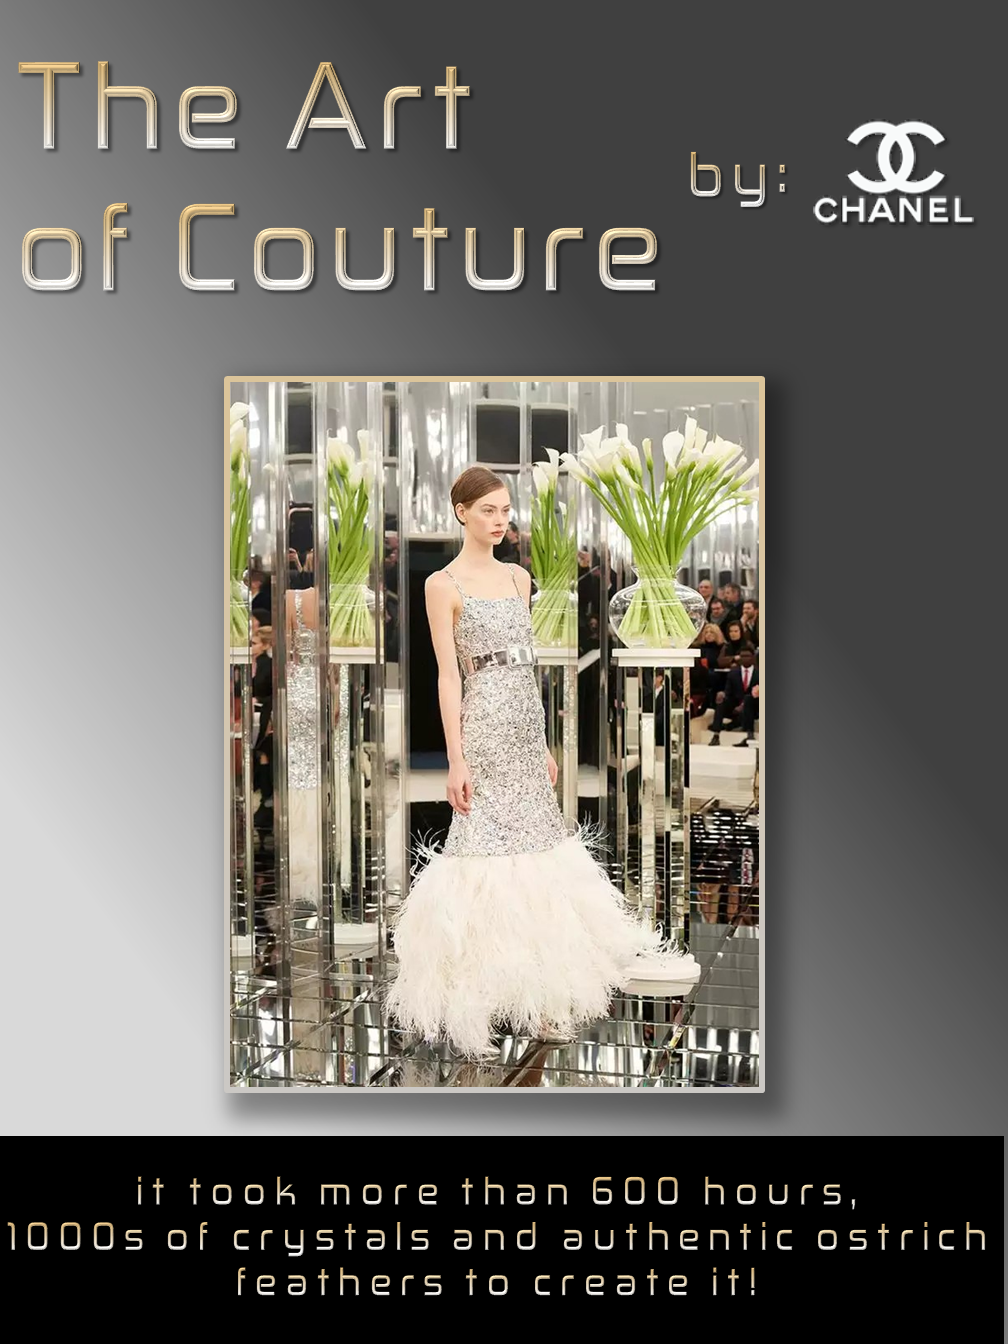 The Art of Couture